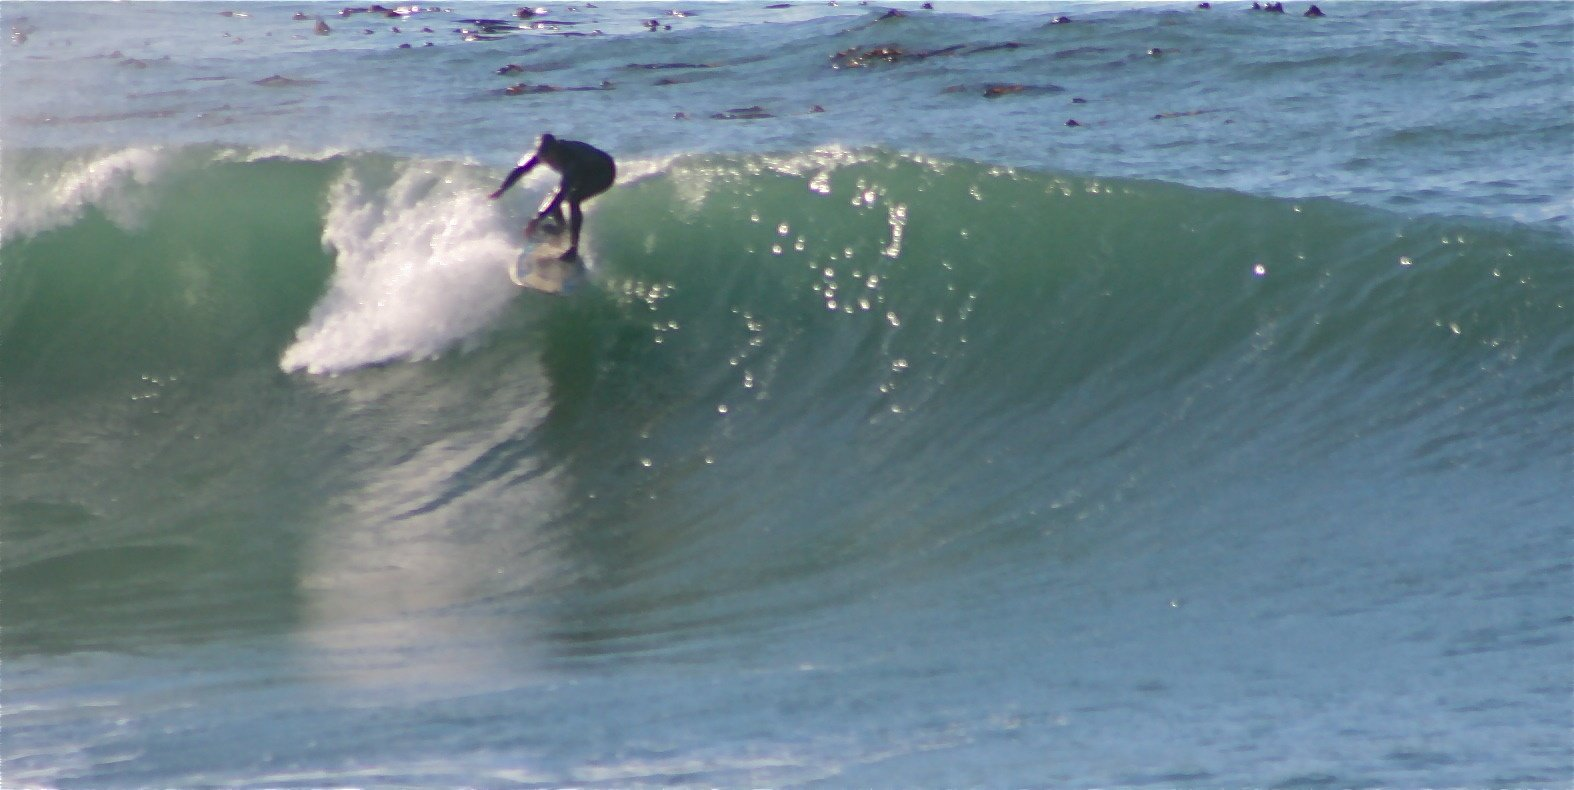 Mike's Surf Shorts's photo of Point Arena